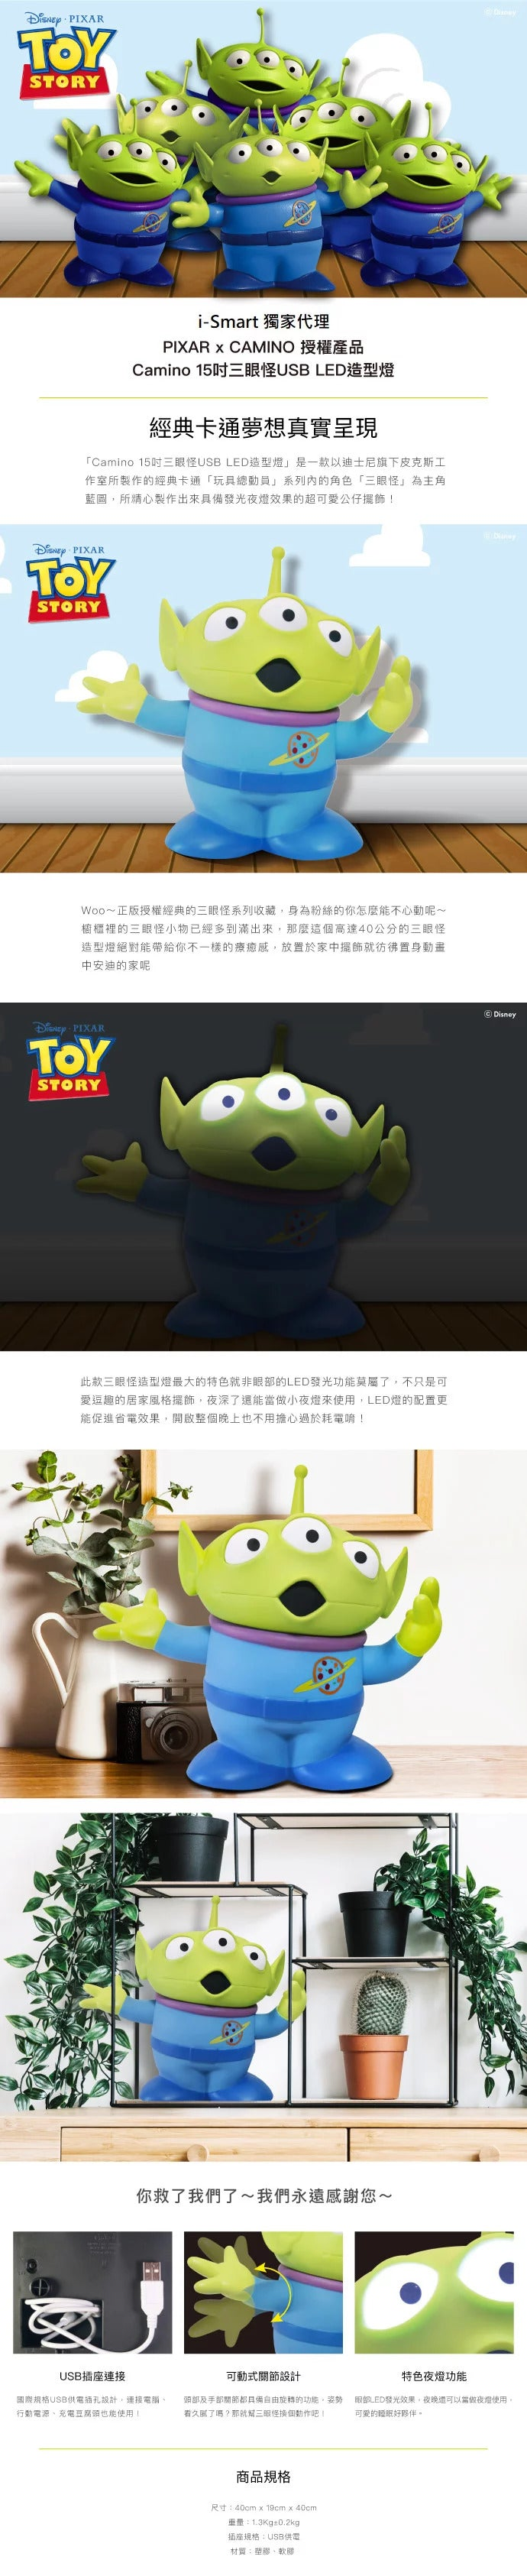 Toystory Alien USB Light - up-next.com.hk